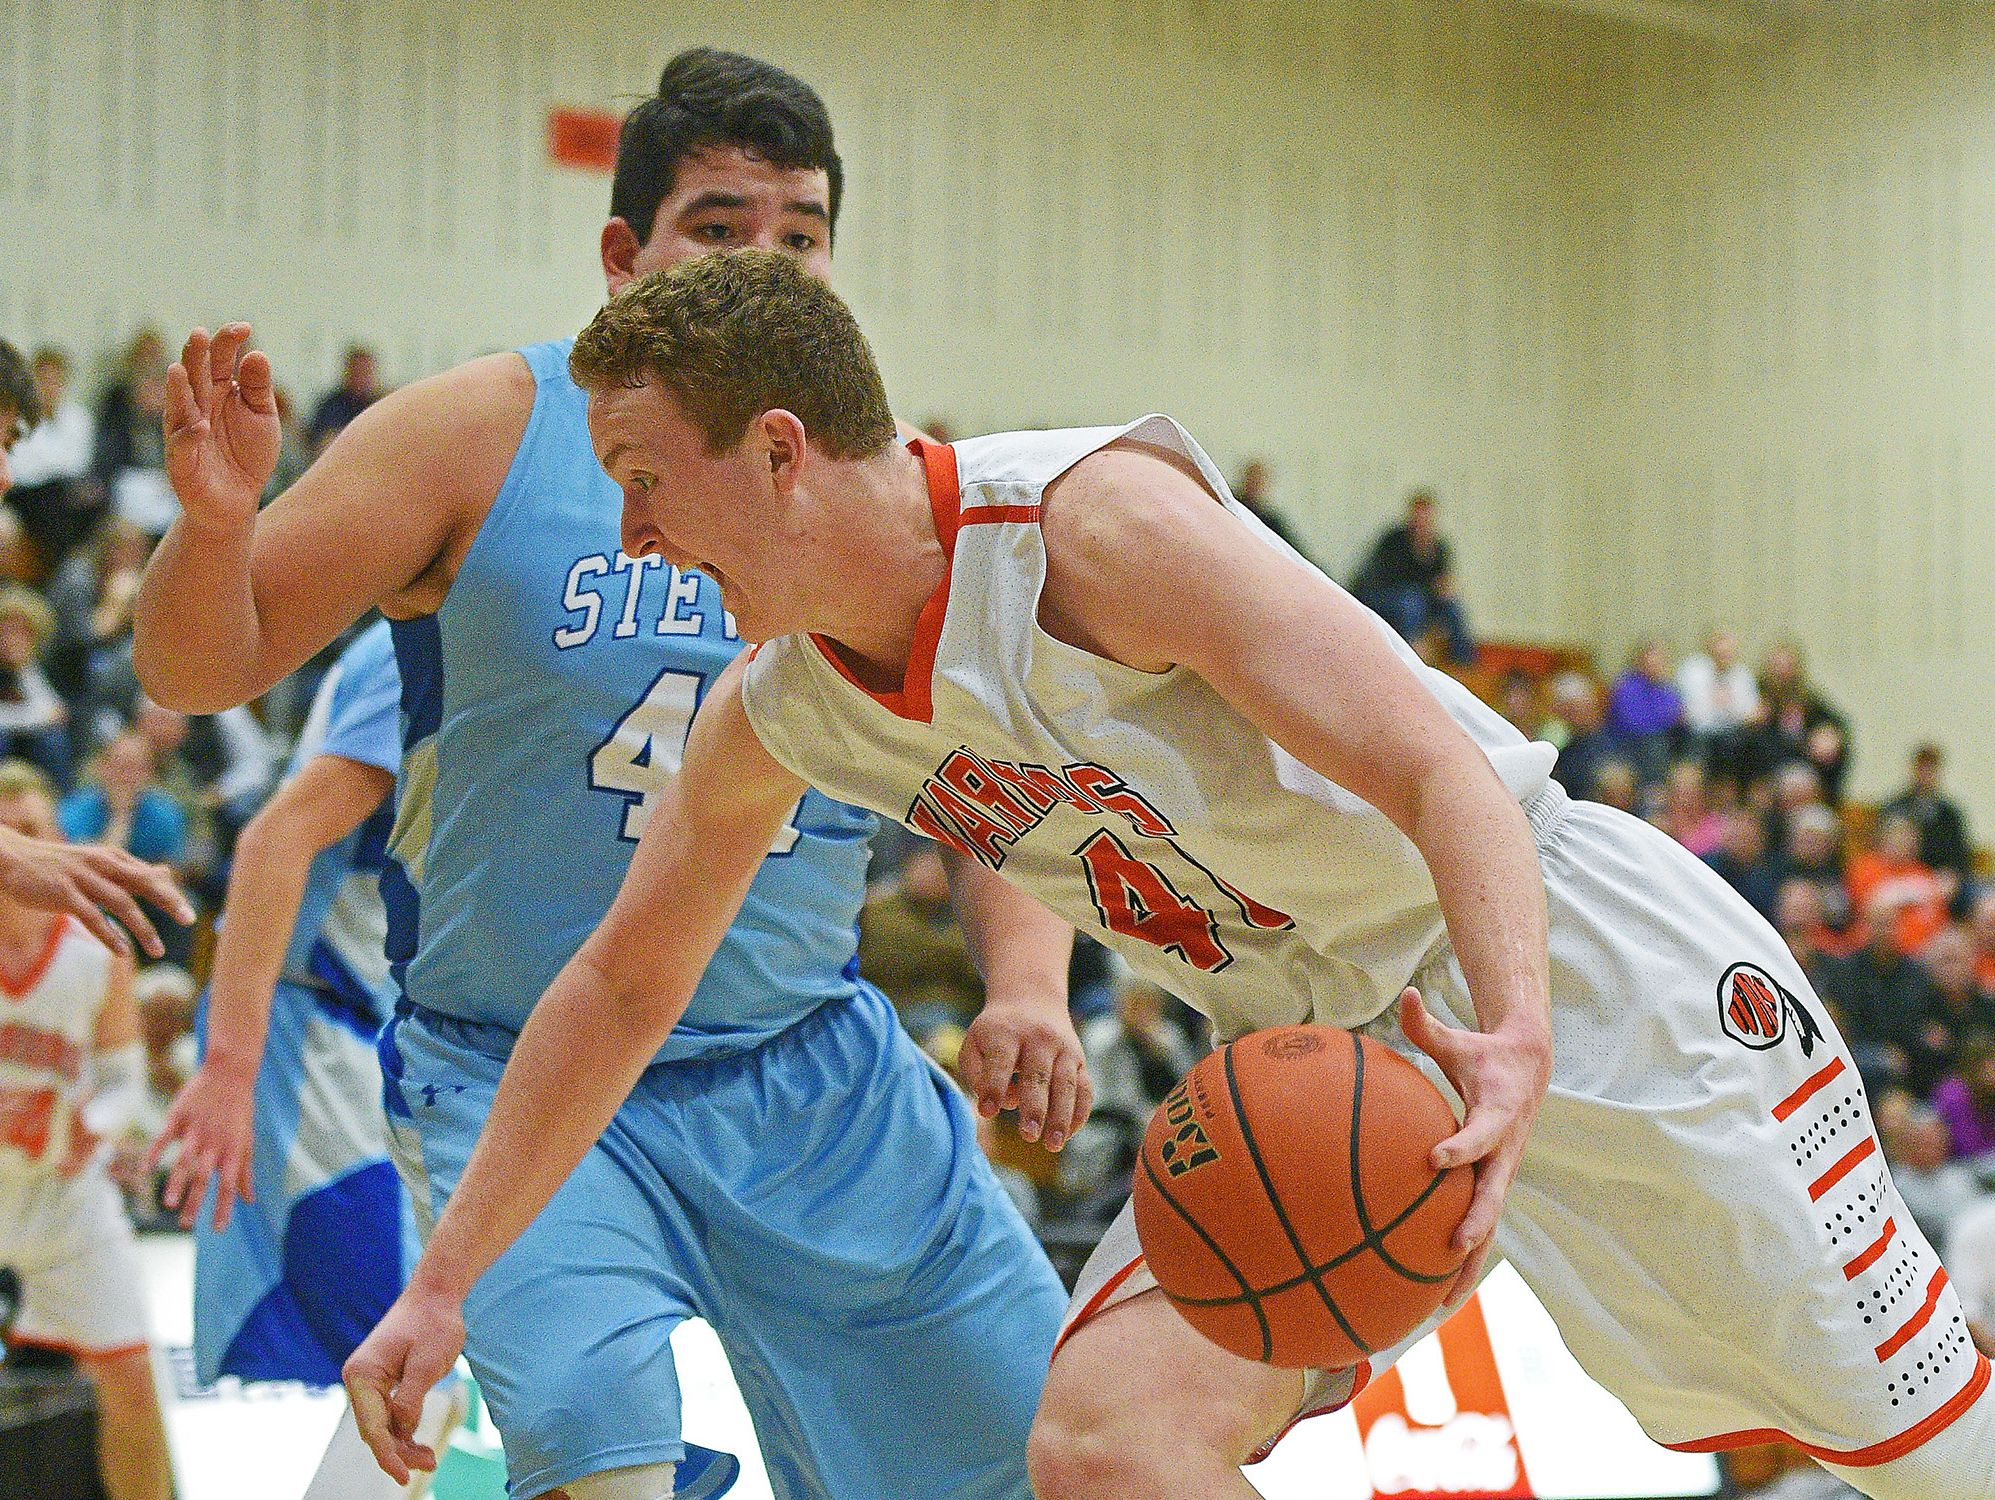 Washington's Zach Heins (40) drives past Rapid City Stevens' Jordan Lawrence (44) during a game Friday, Feb. 10, 2017, at Washington High School in Sioux Falls.